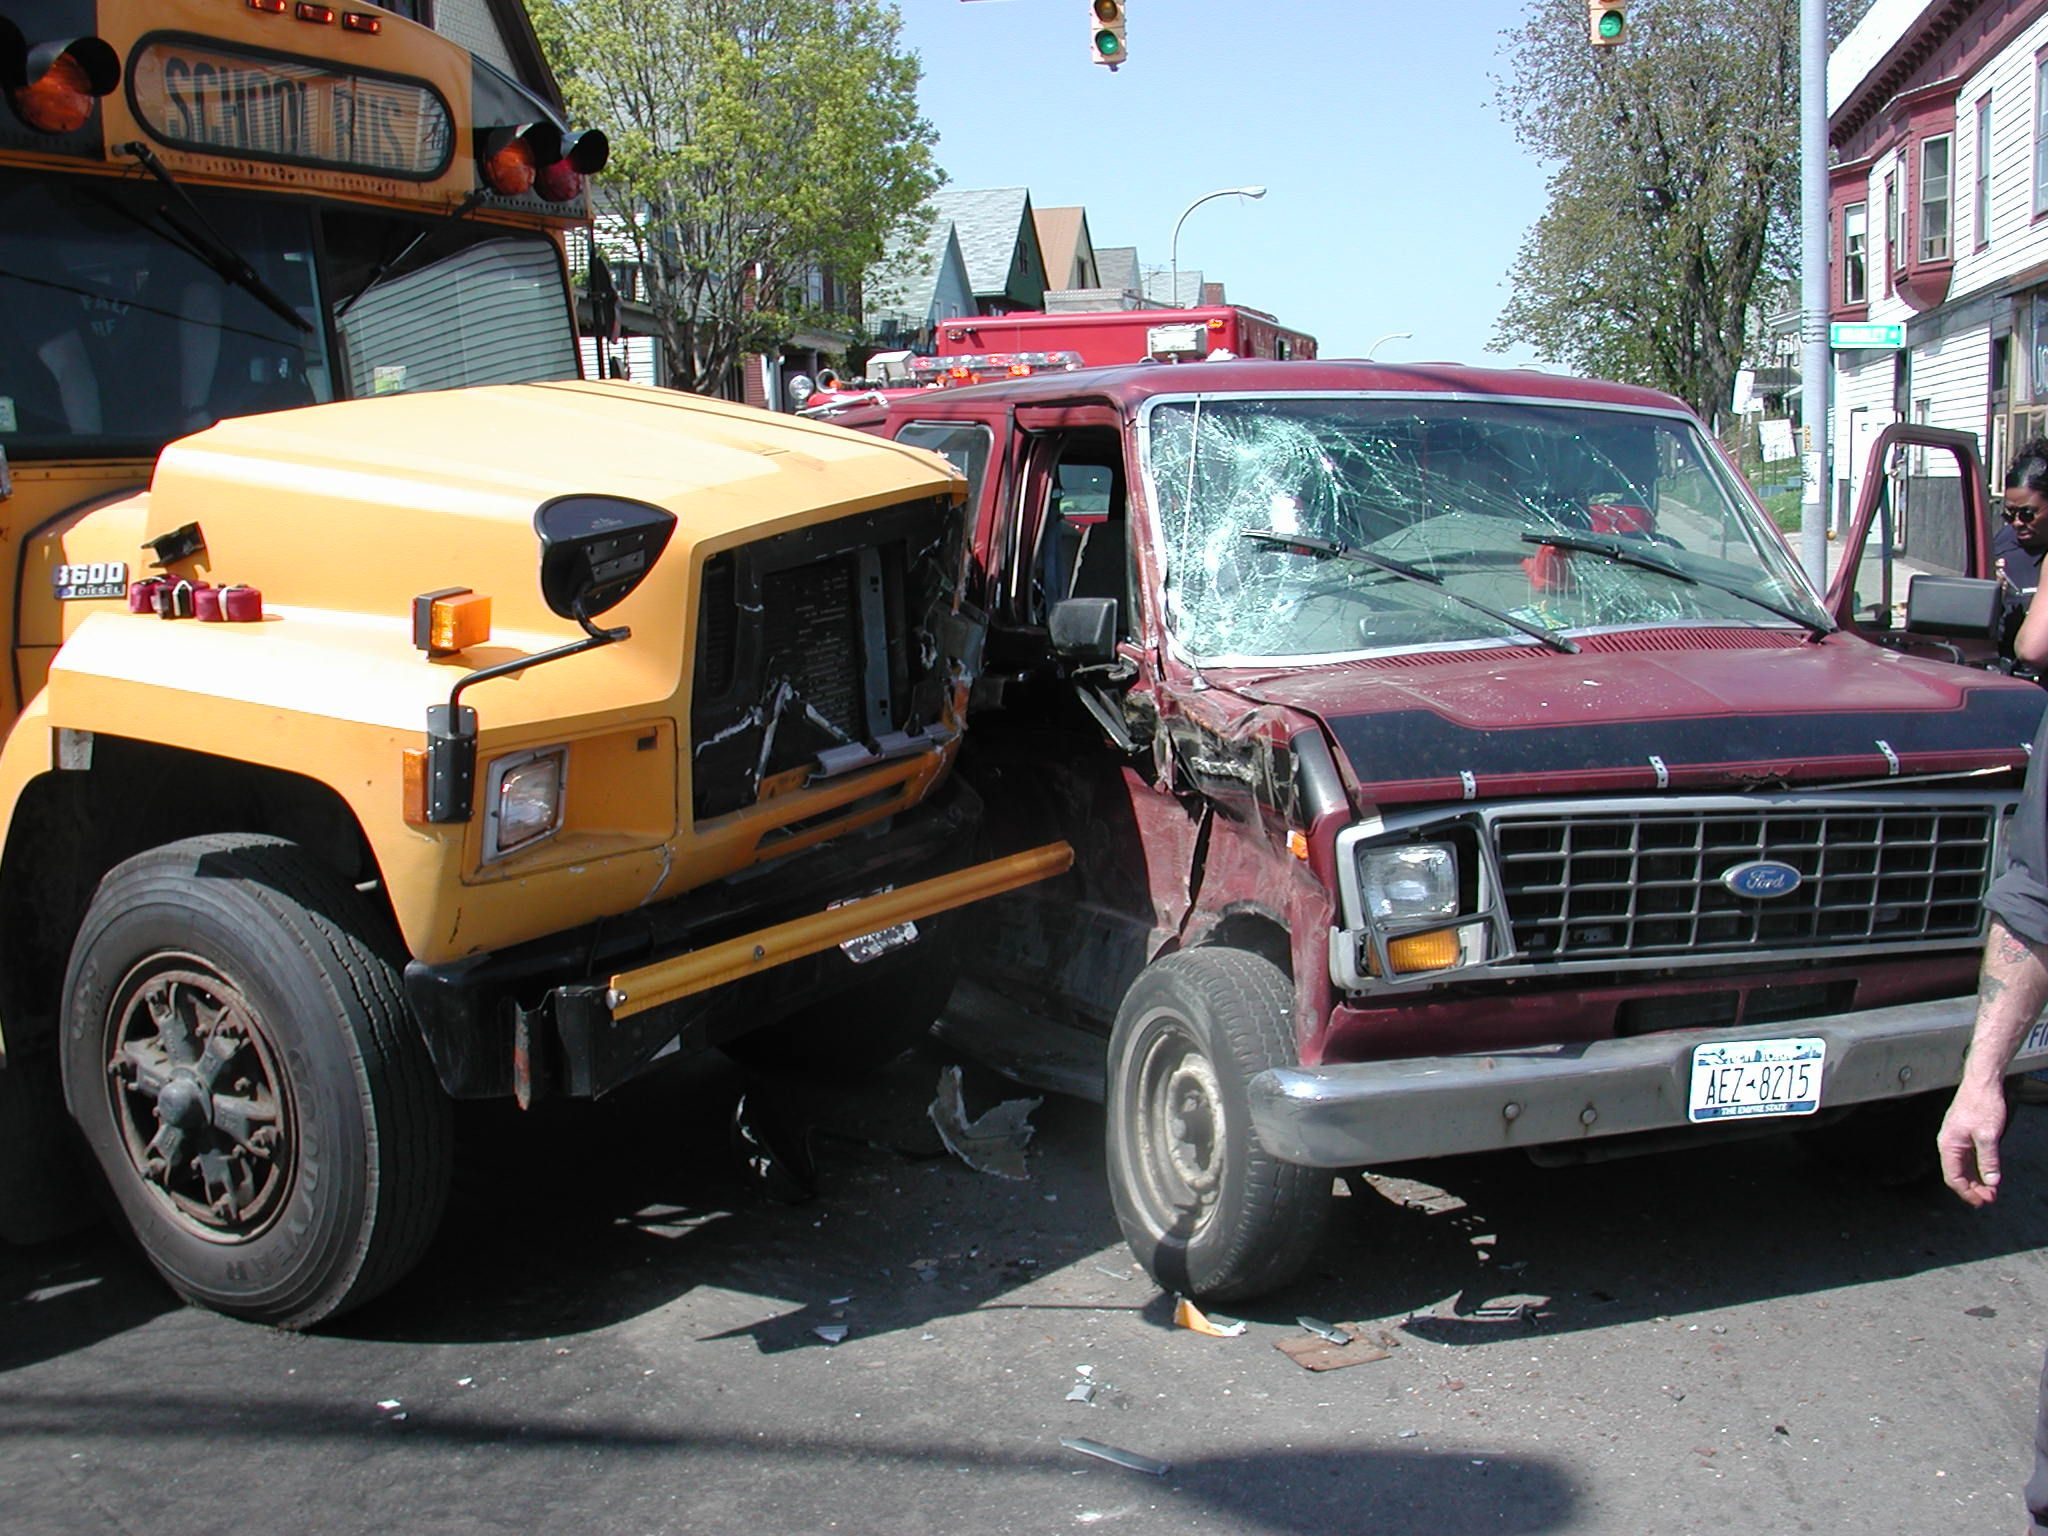 Post-accident Procedures Committees Key in Prevention